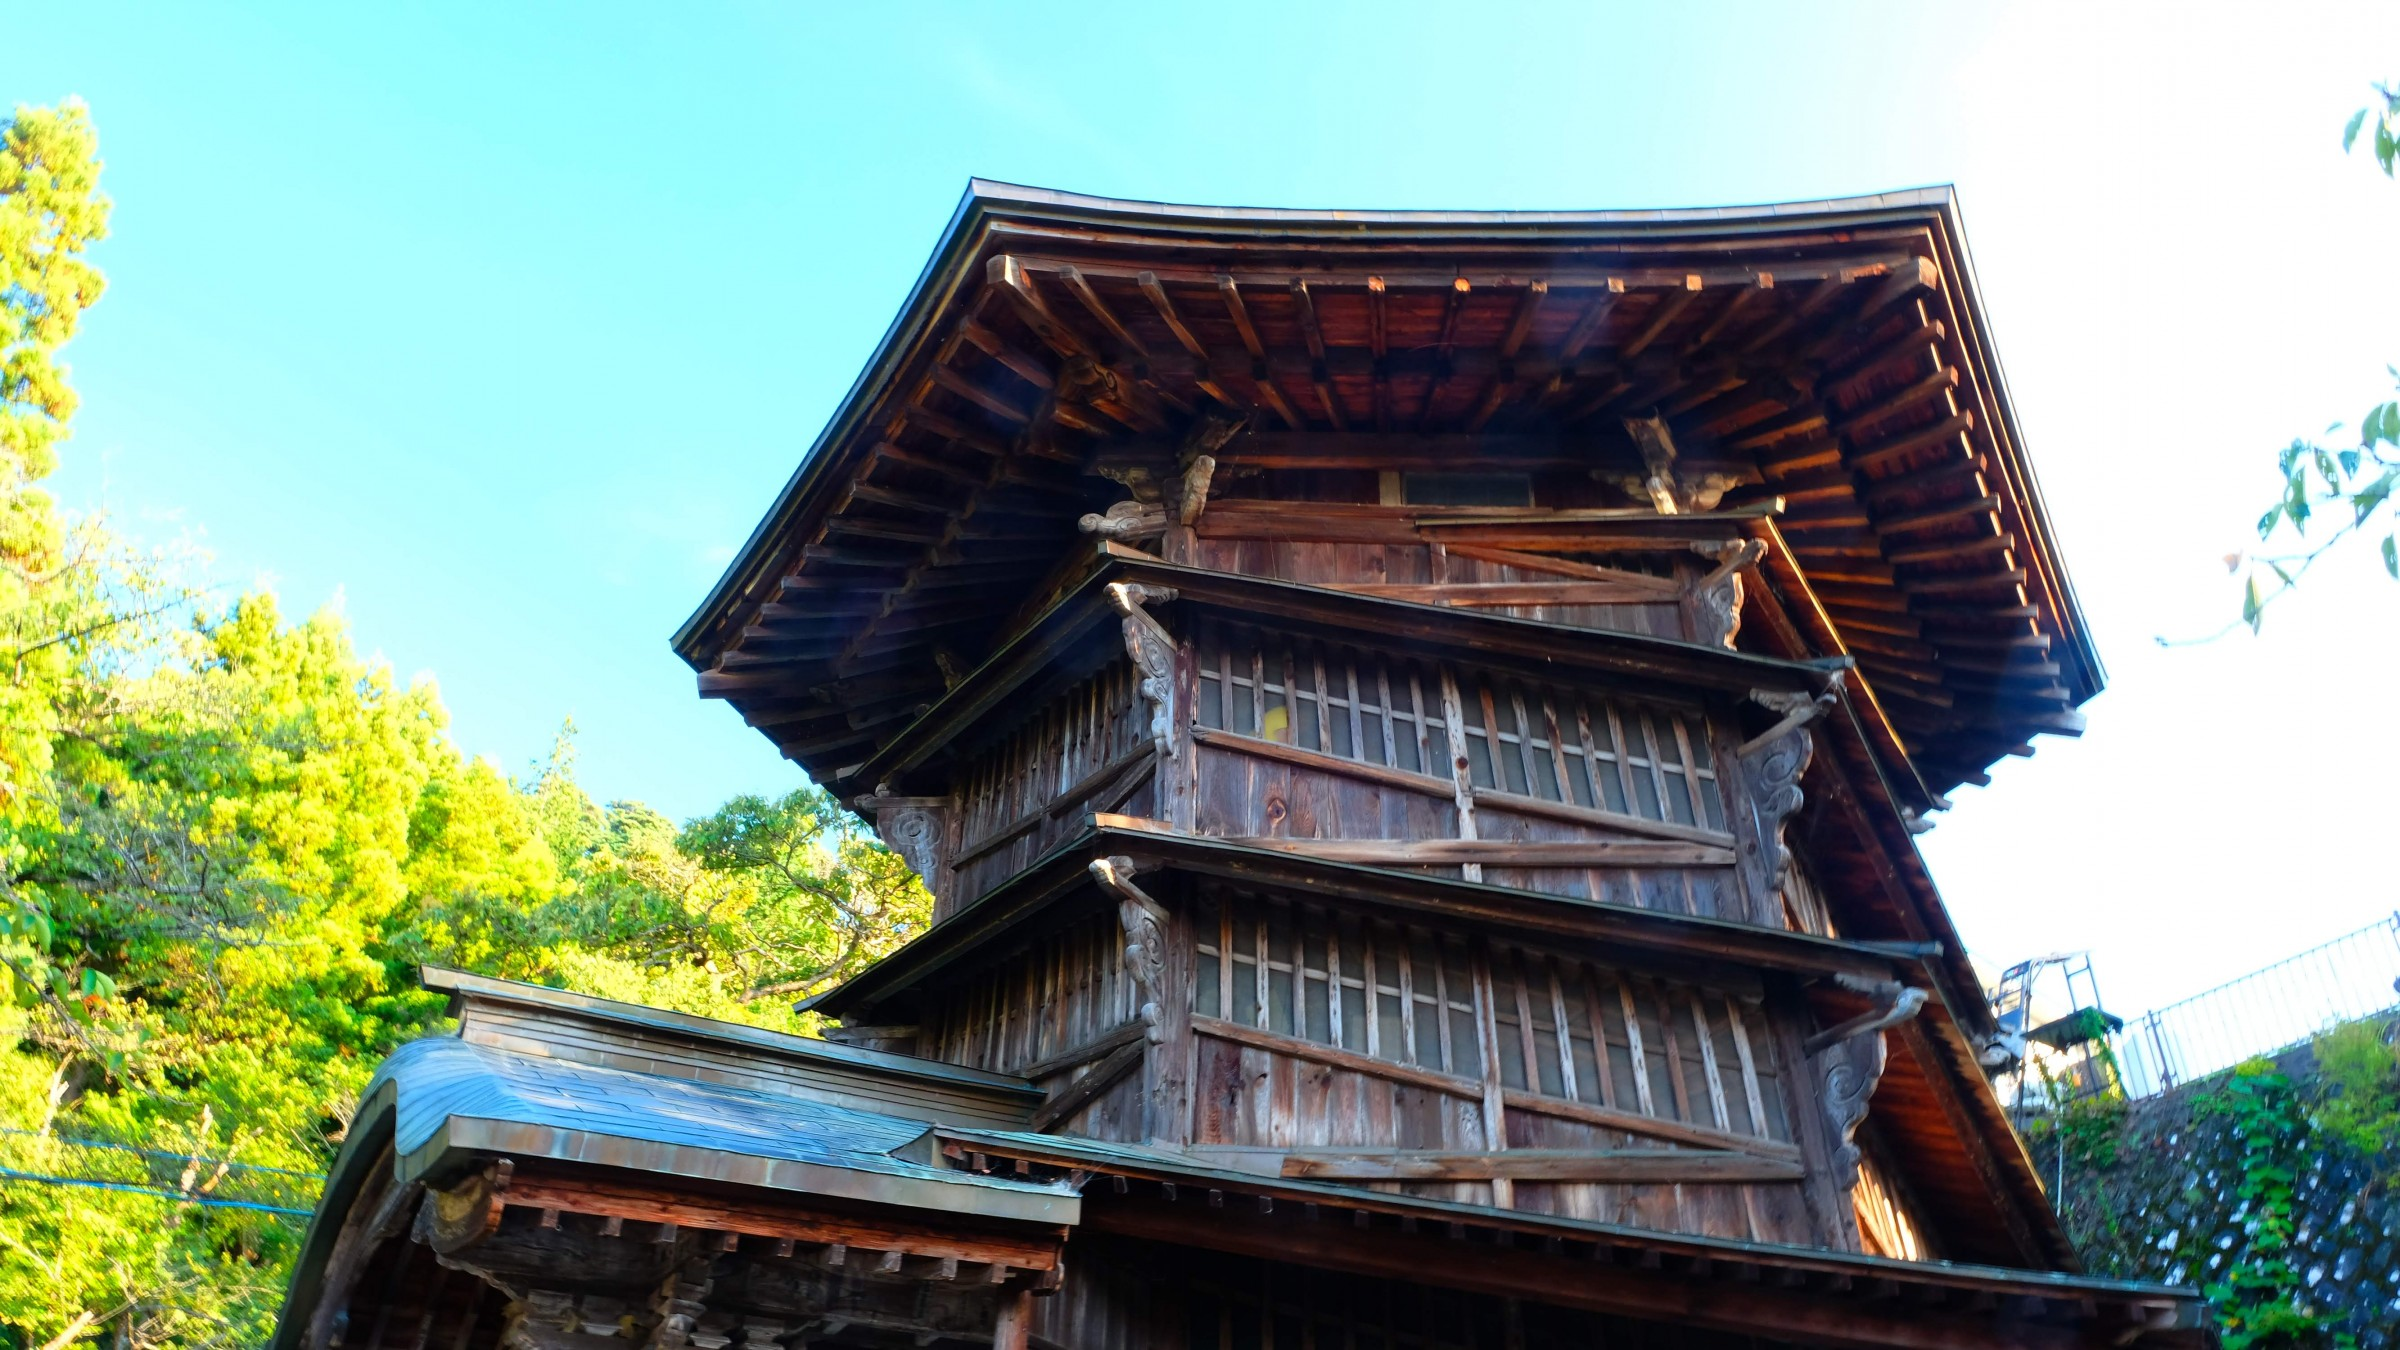 Sazaedo Temple, a Buddhist temple famous for its unusual double spiral structure